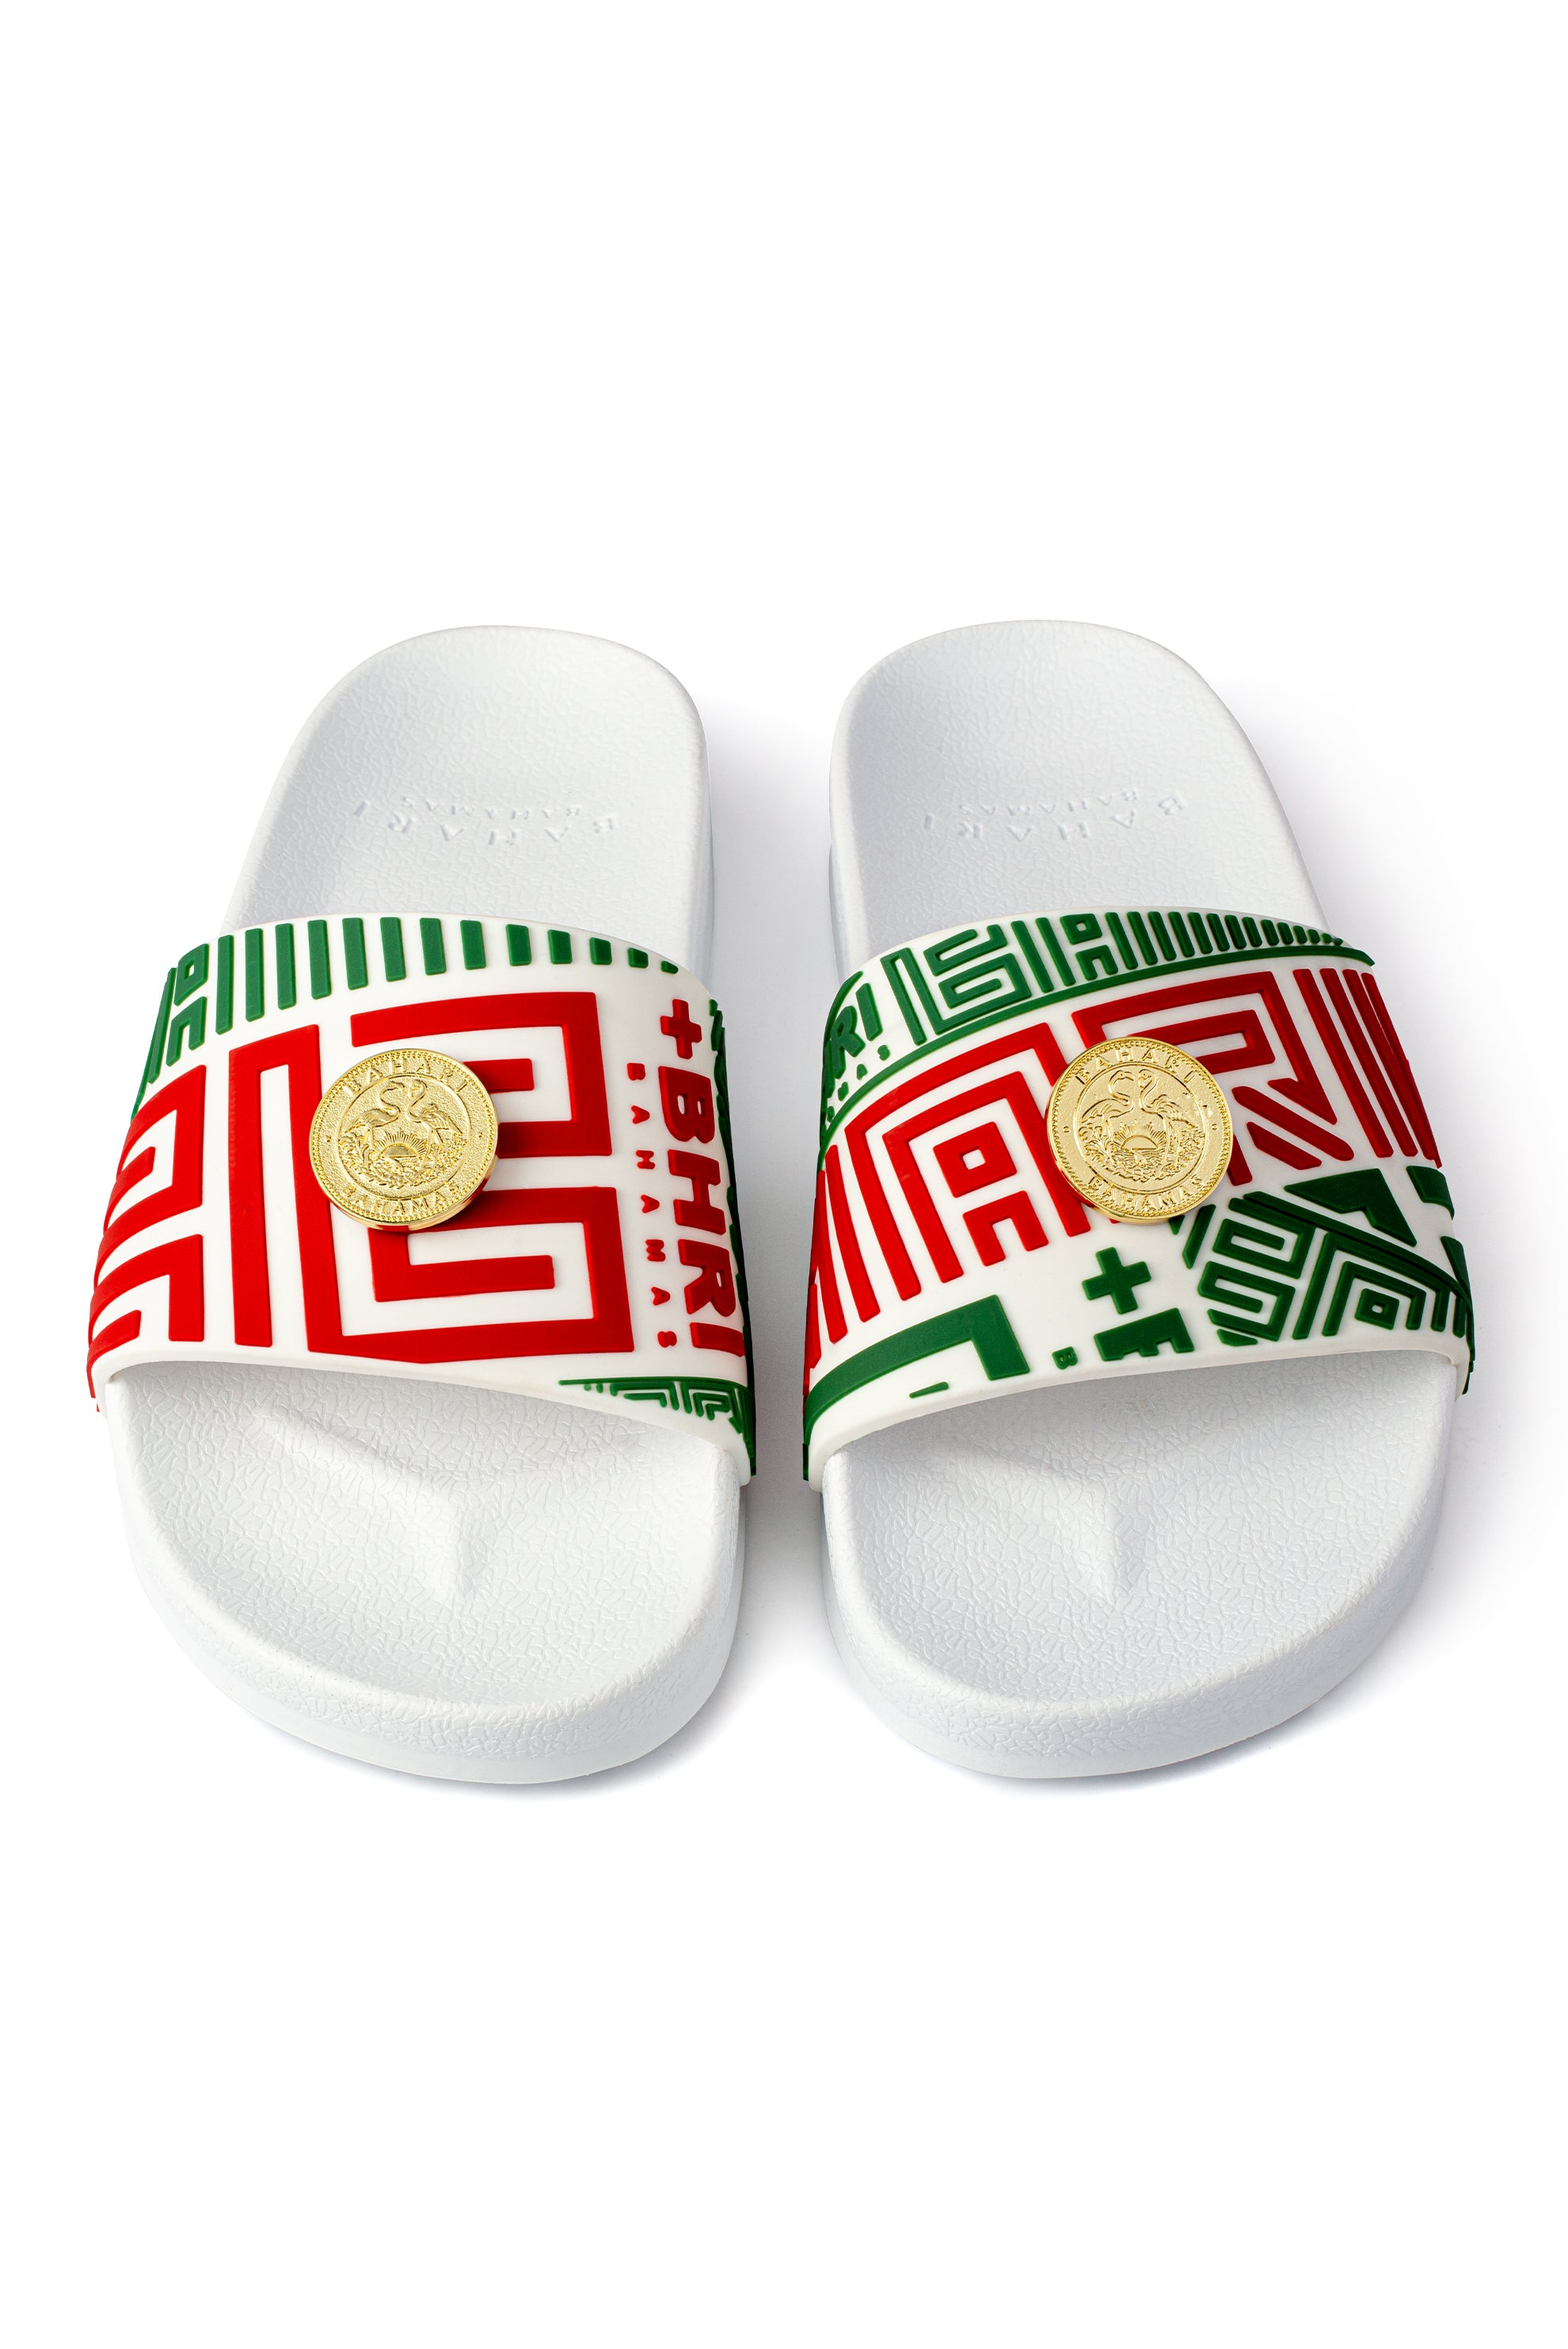 UNISEX VIDA REX SILICONE SLIDES - WHITE / GREEN / RED